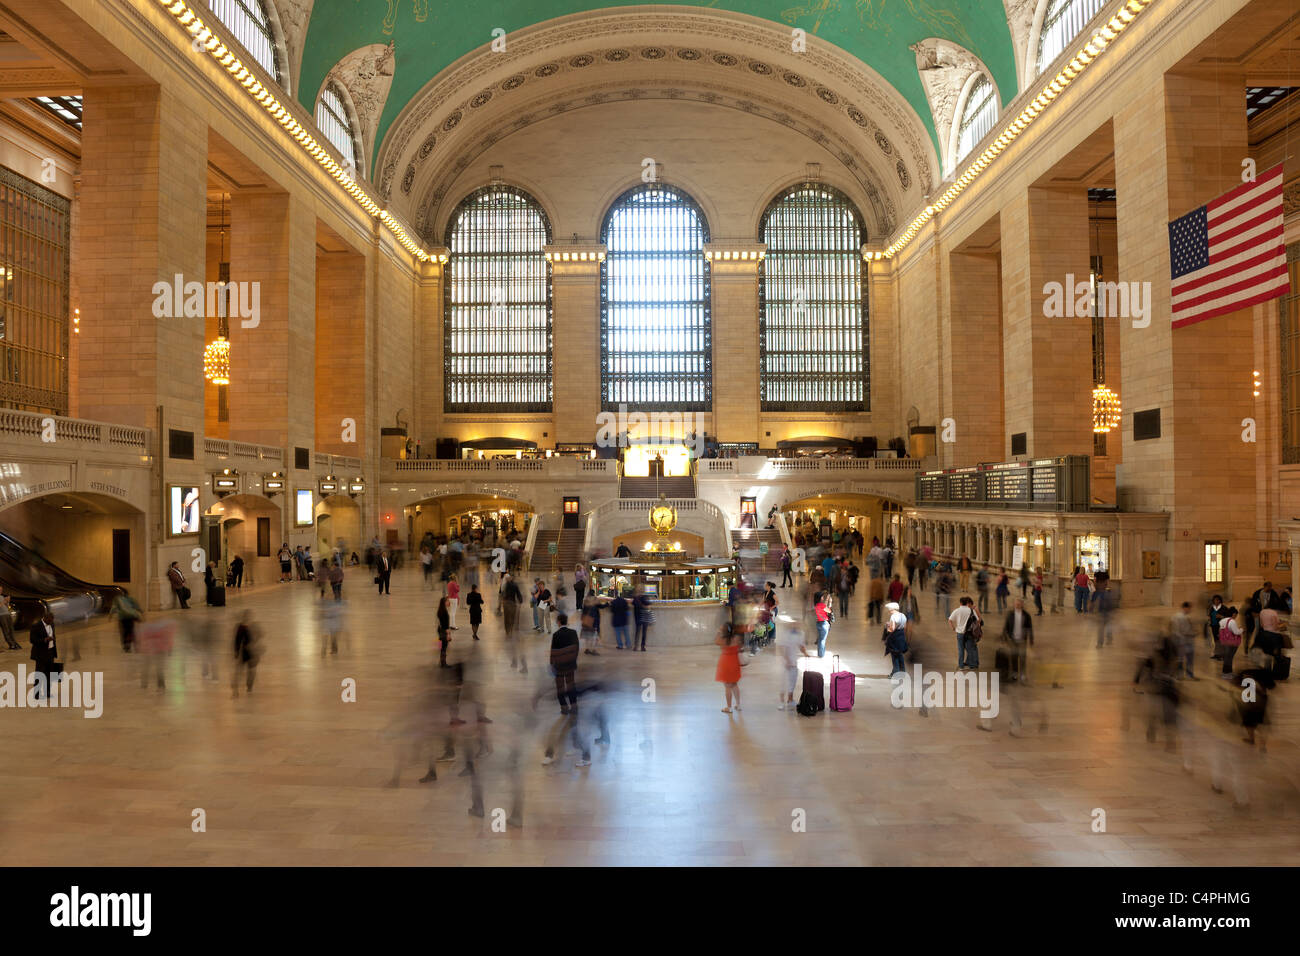 Train Station New York Building Stock Photos & Train Station New ...